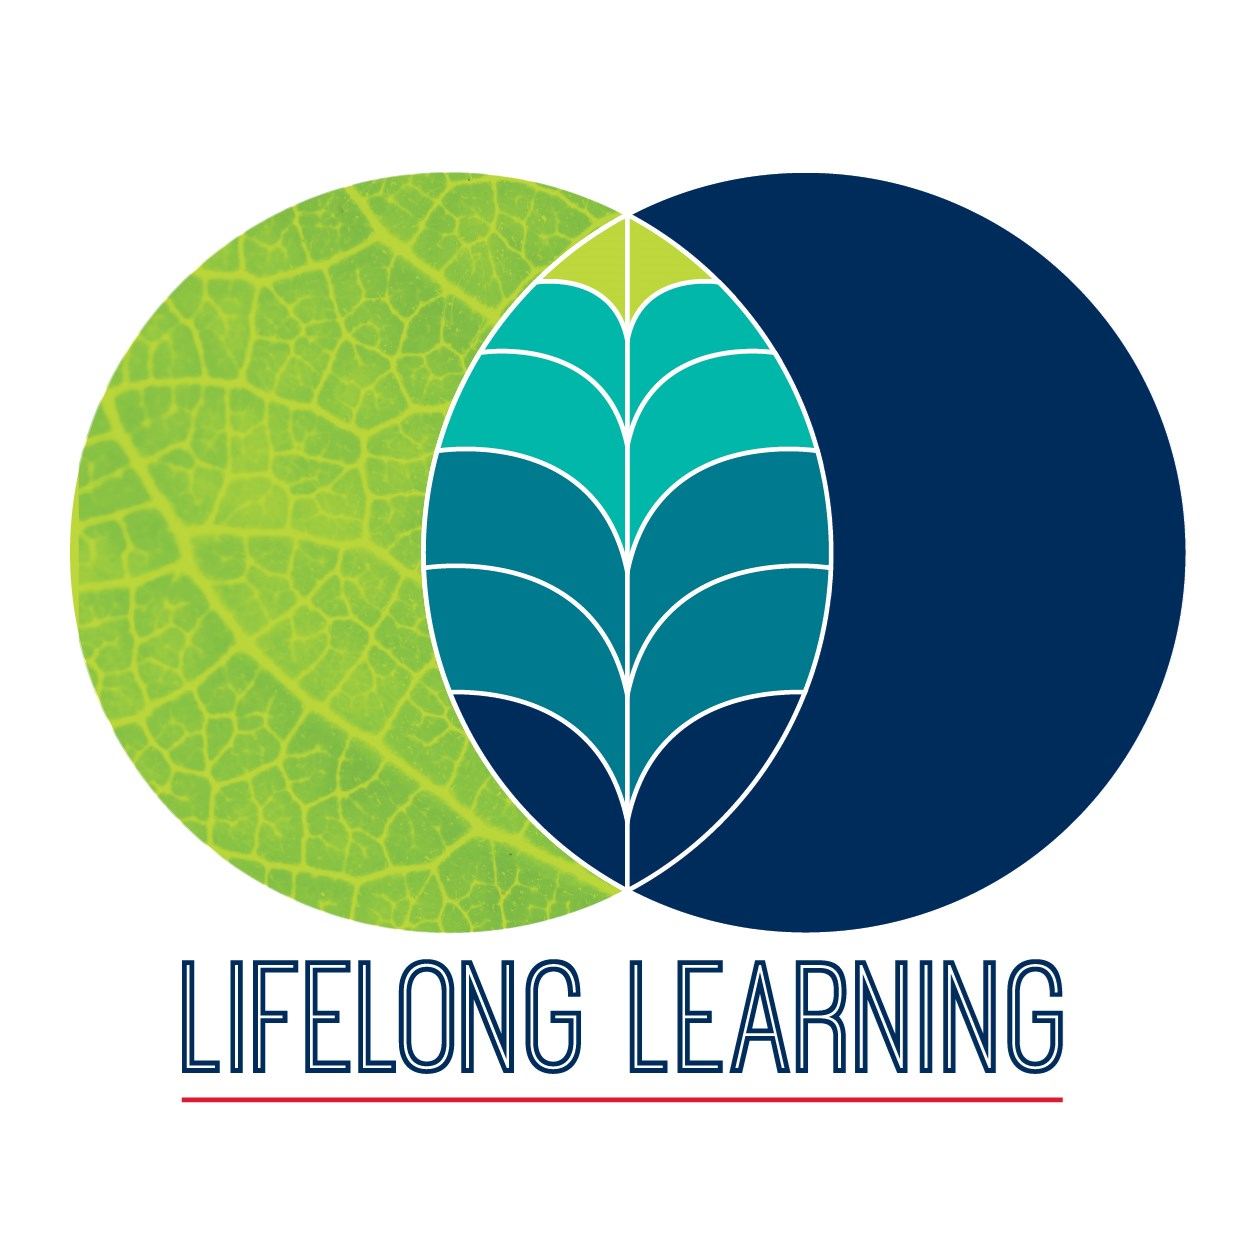 Spring 2018 Lifelong Learning courses released to the community